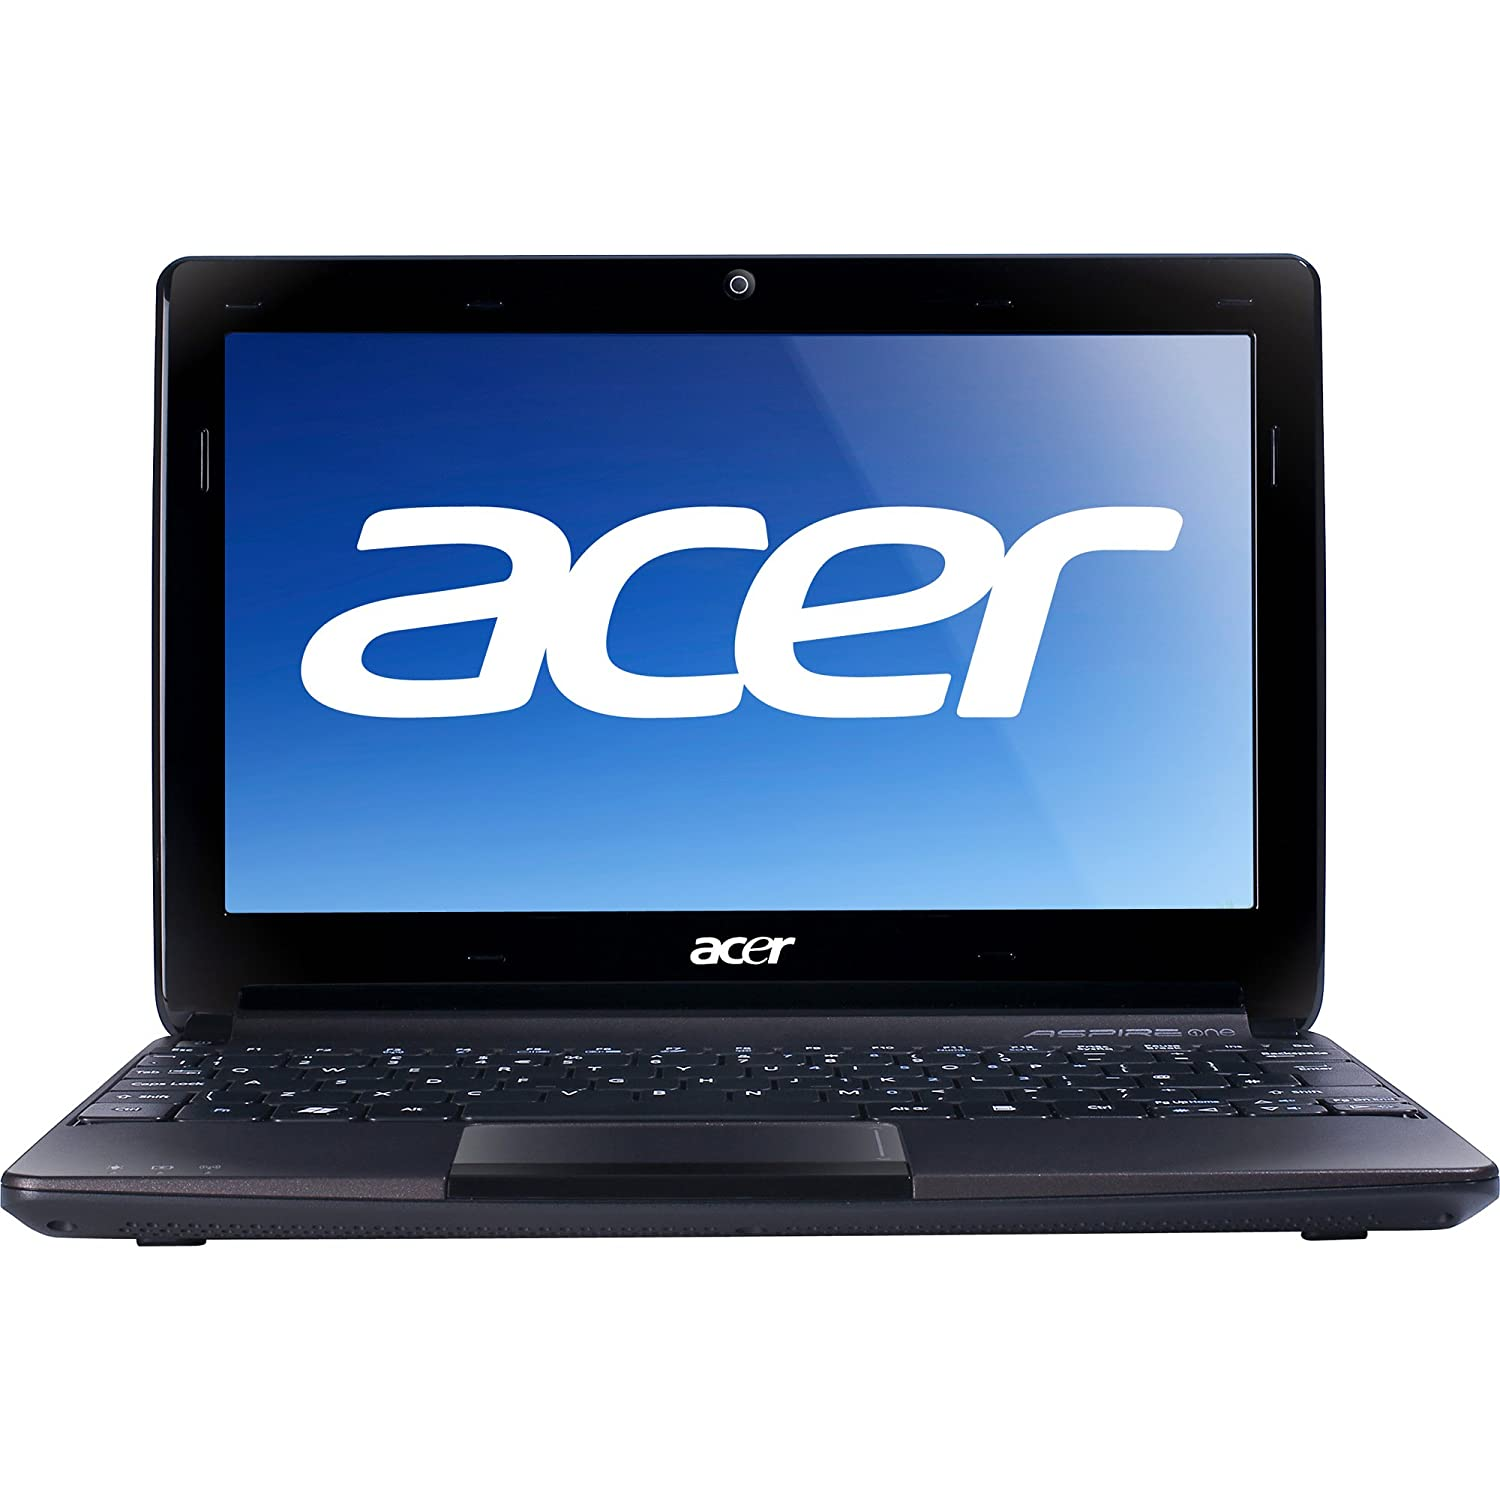 Acer Aspire One 722-BZ197 Netbook (Black)